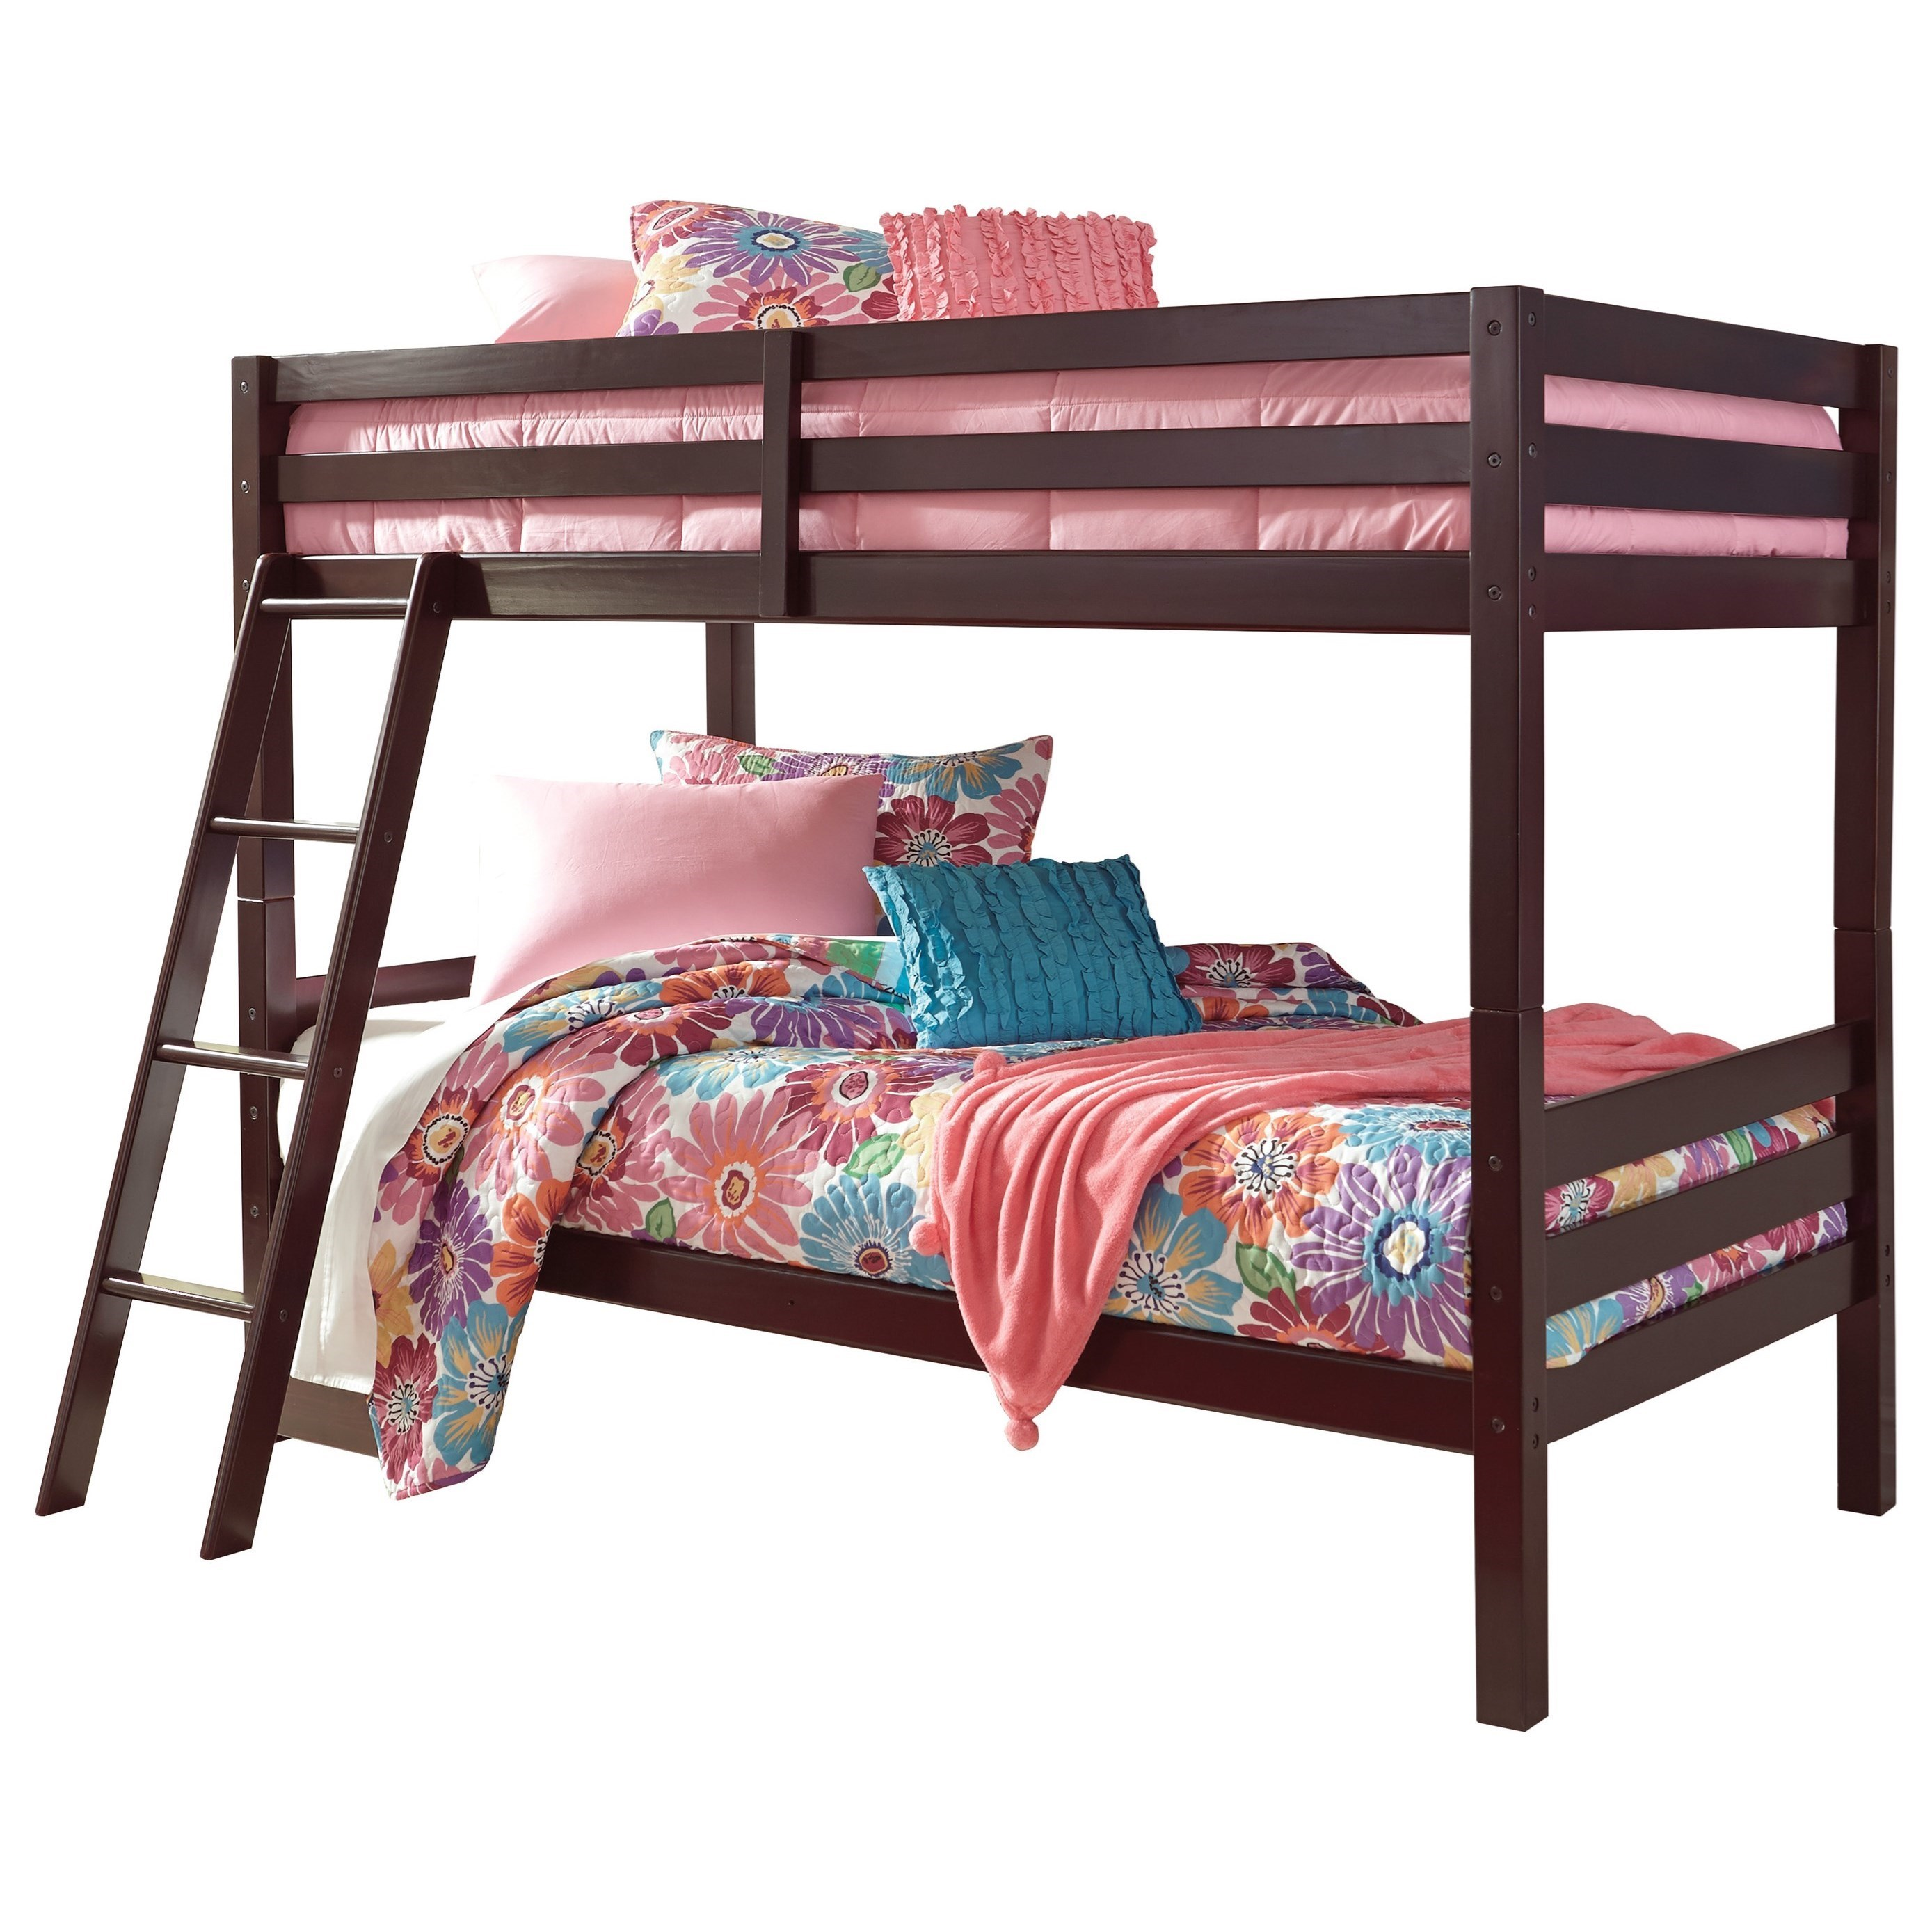 Halanton Solid Pine Twin/Twin Bunk Bed By Signature Design By Ashley